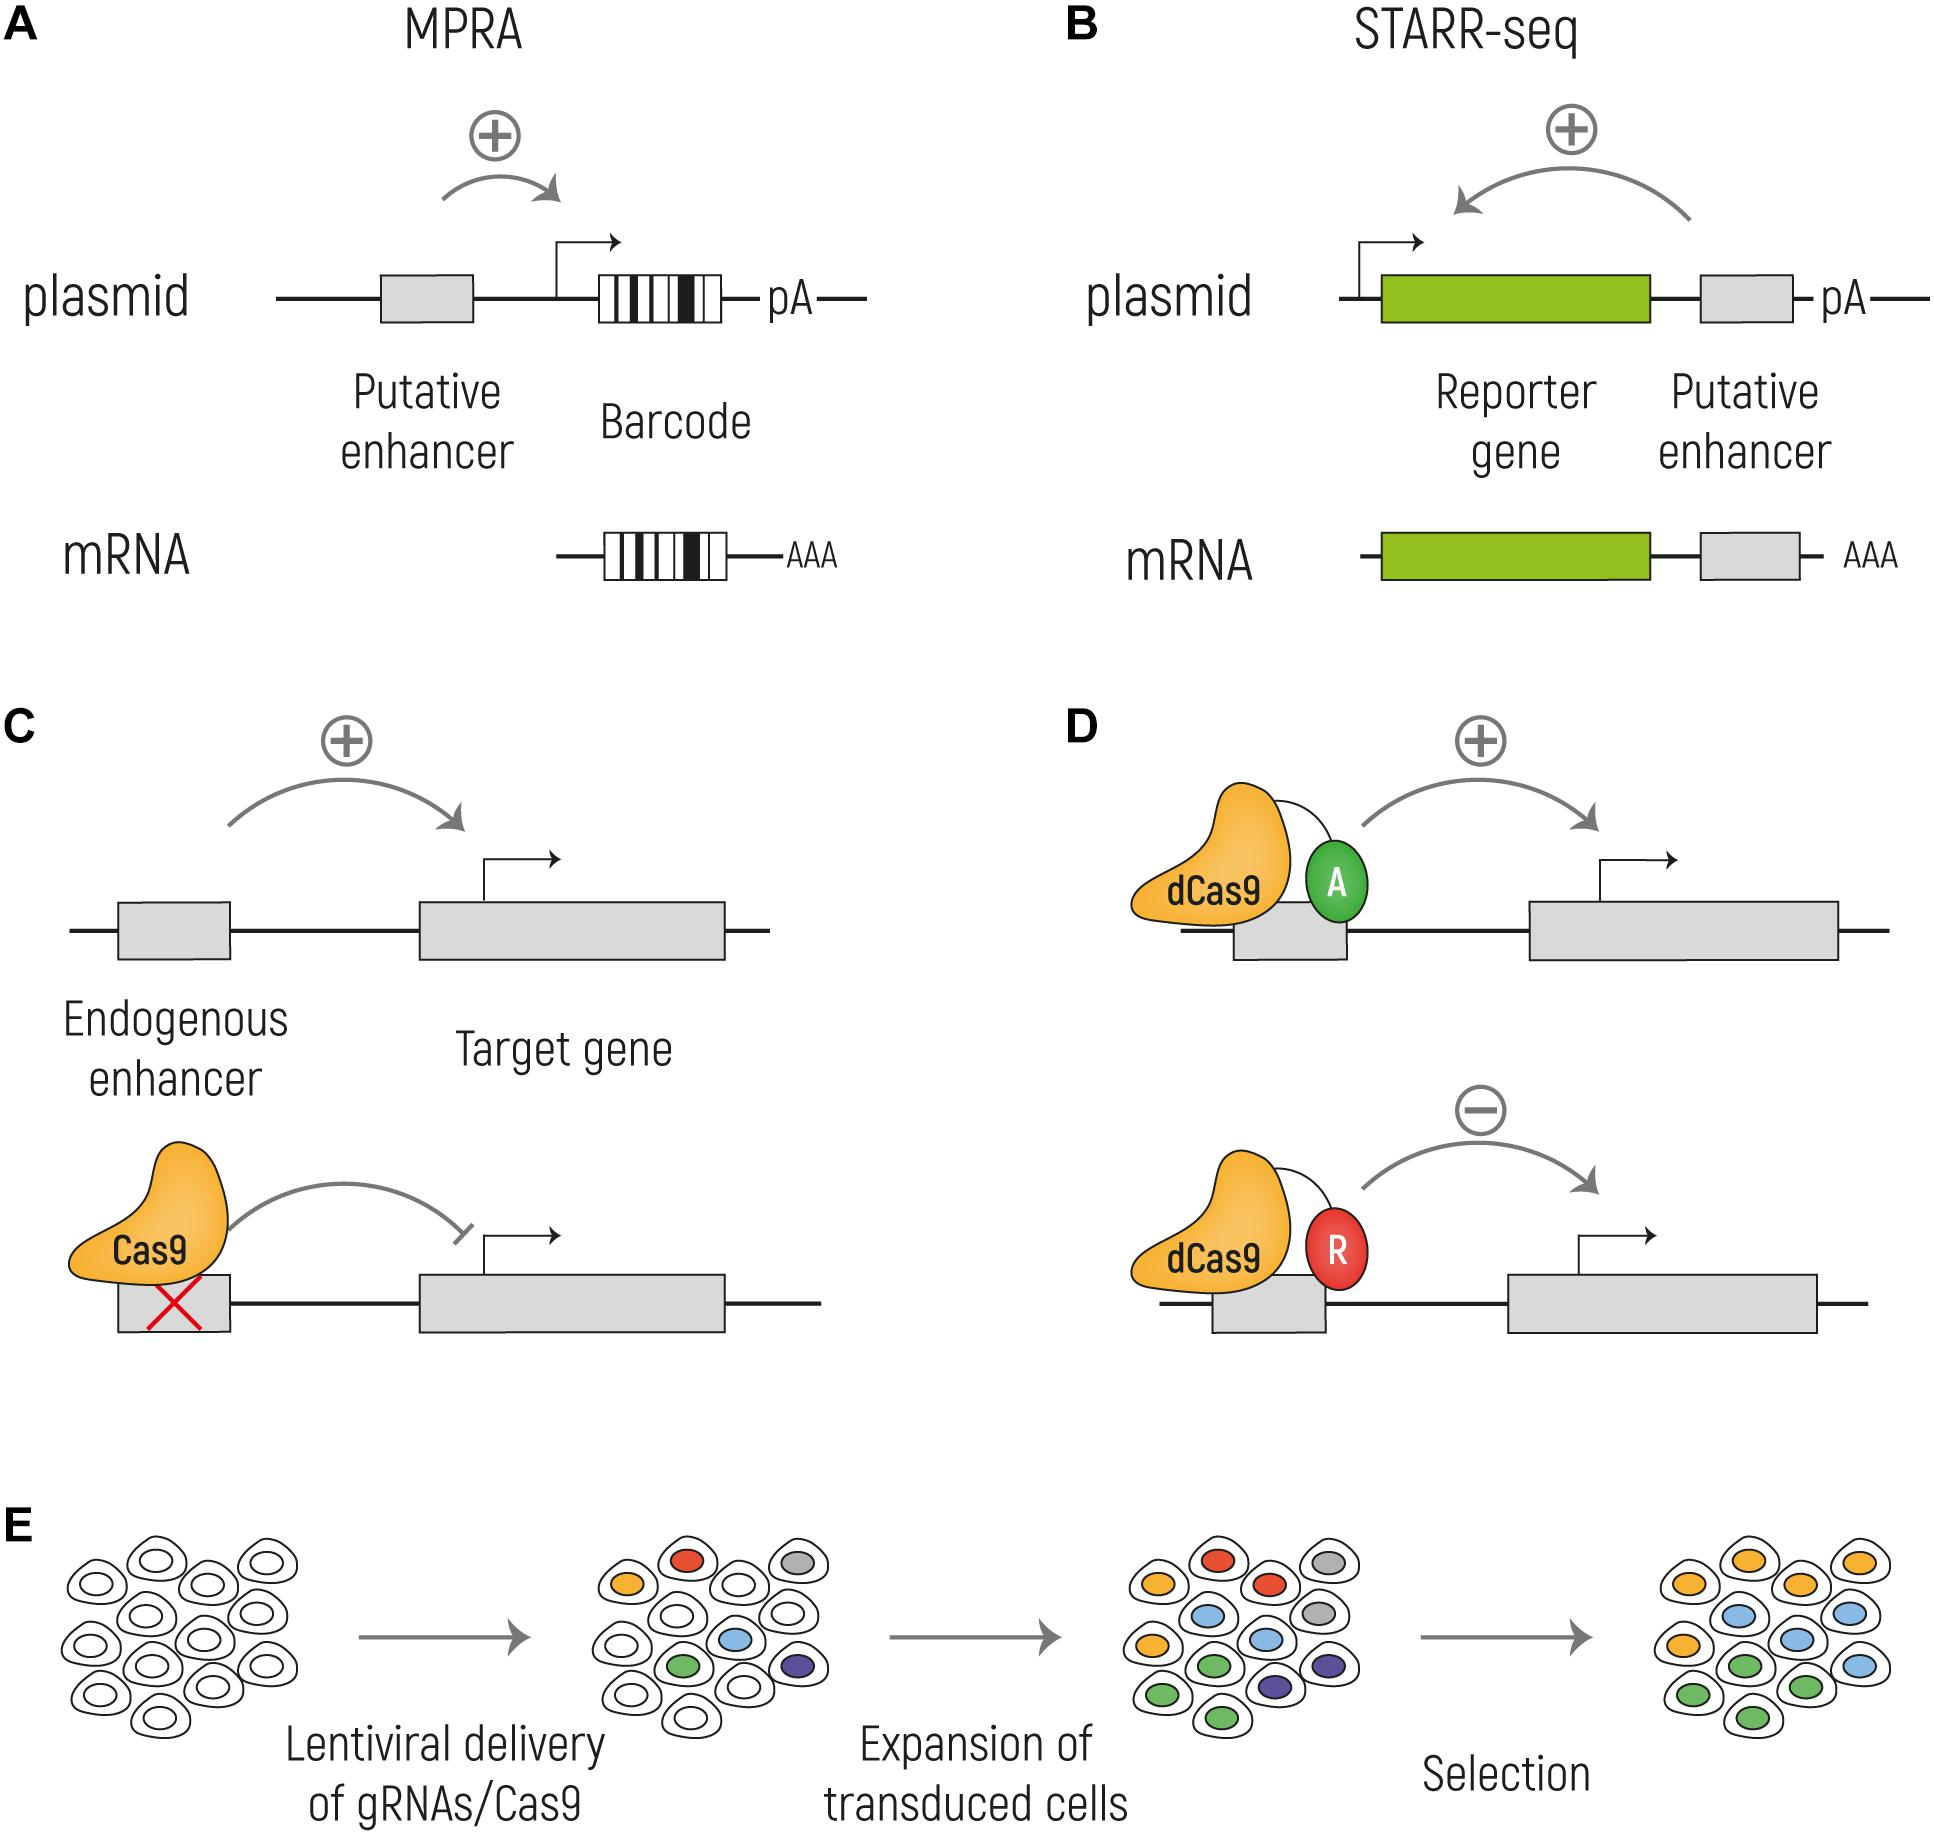 Frontiers | Beyond the Exome: The Non-coding Genome and